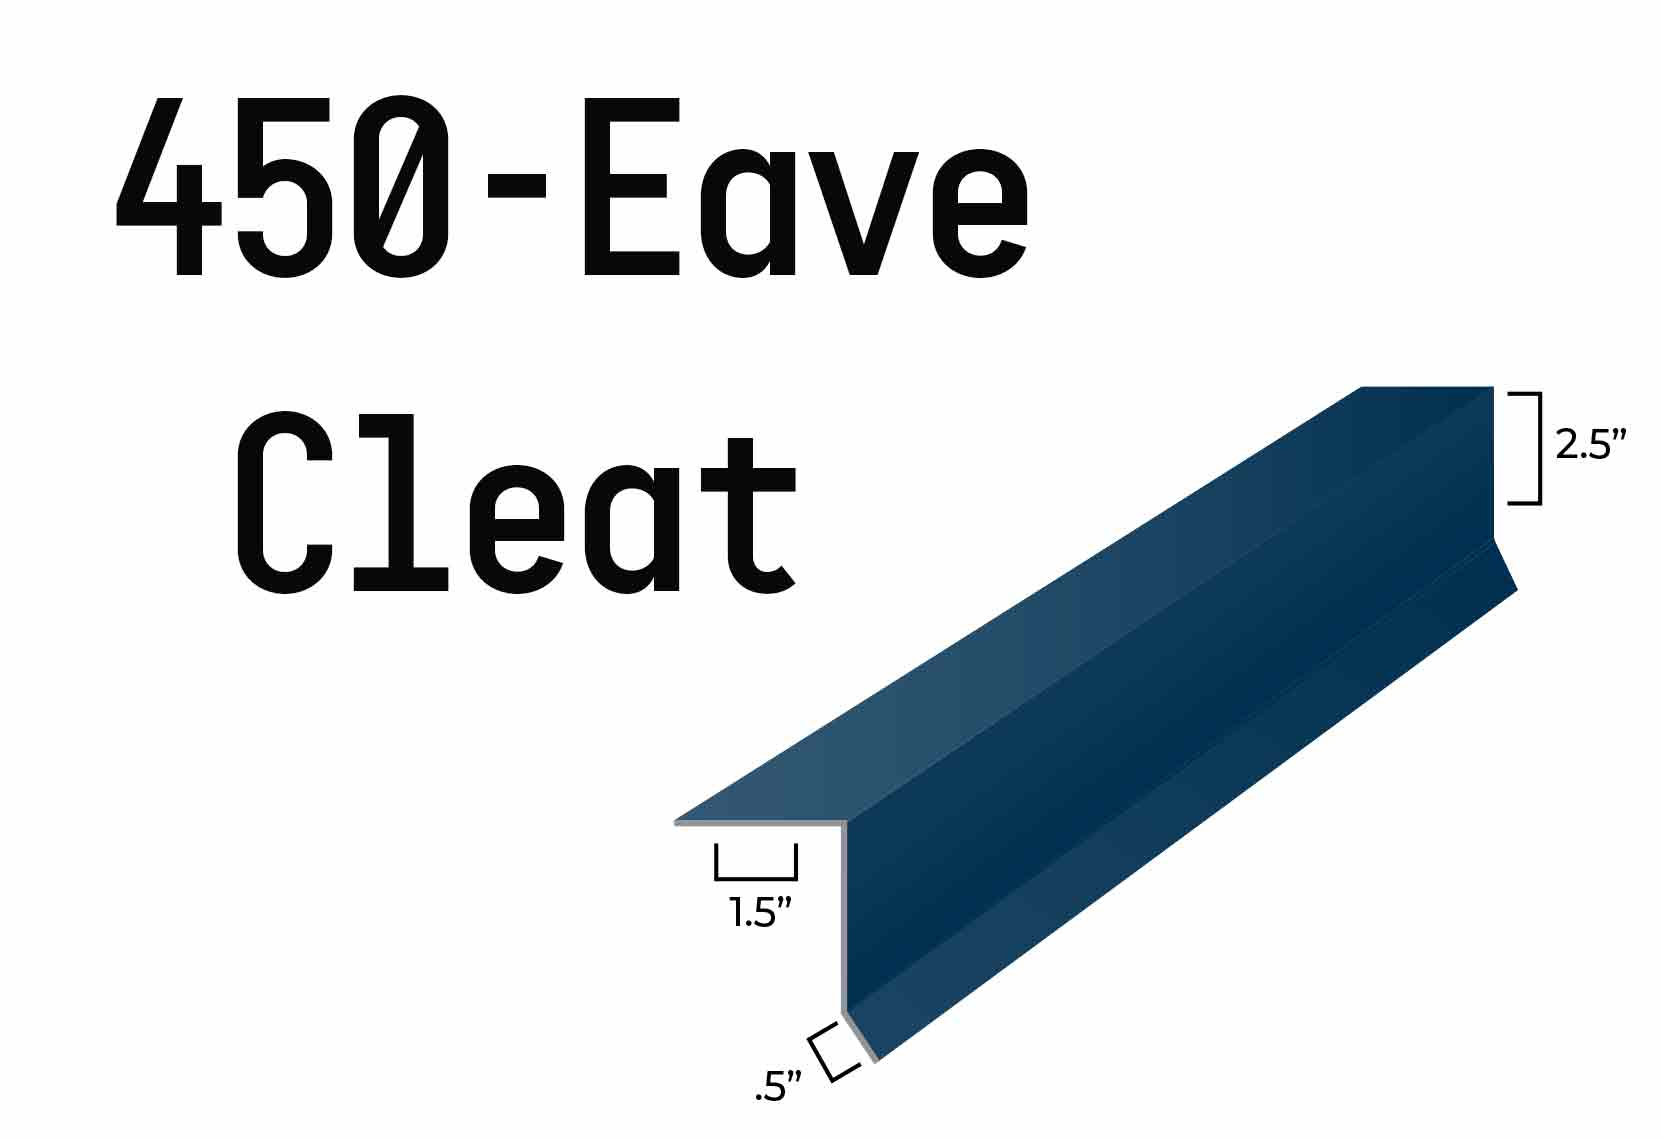 MRS-FF100 450-Eave Cleat